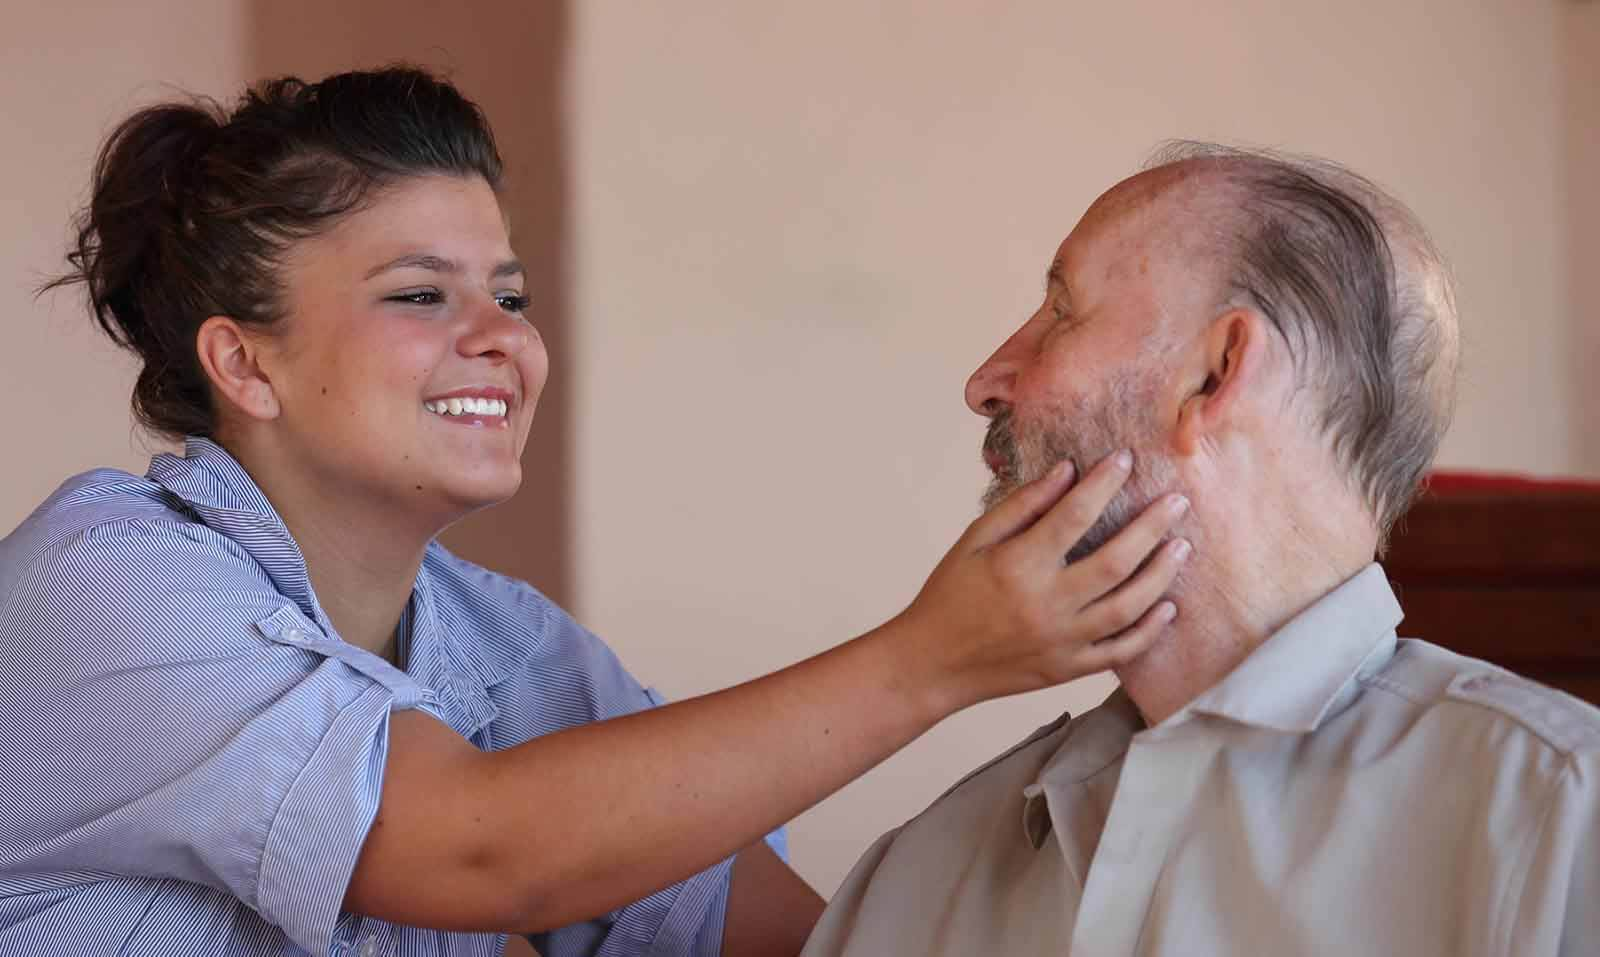 Care home training courses online, cpd certified